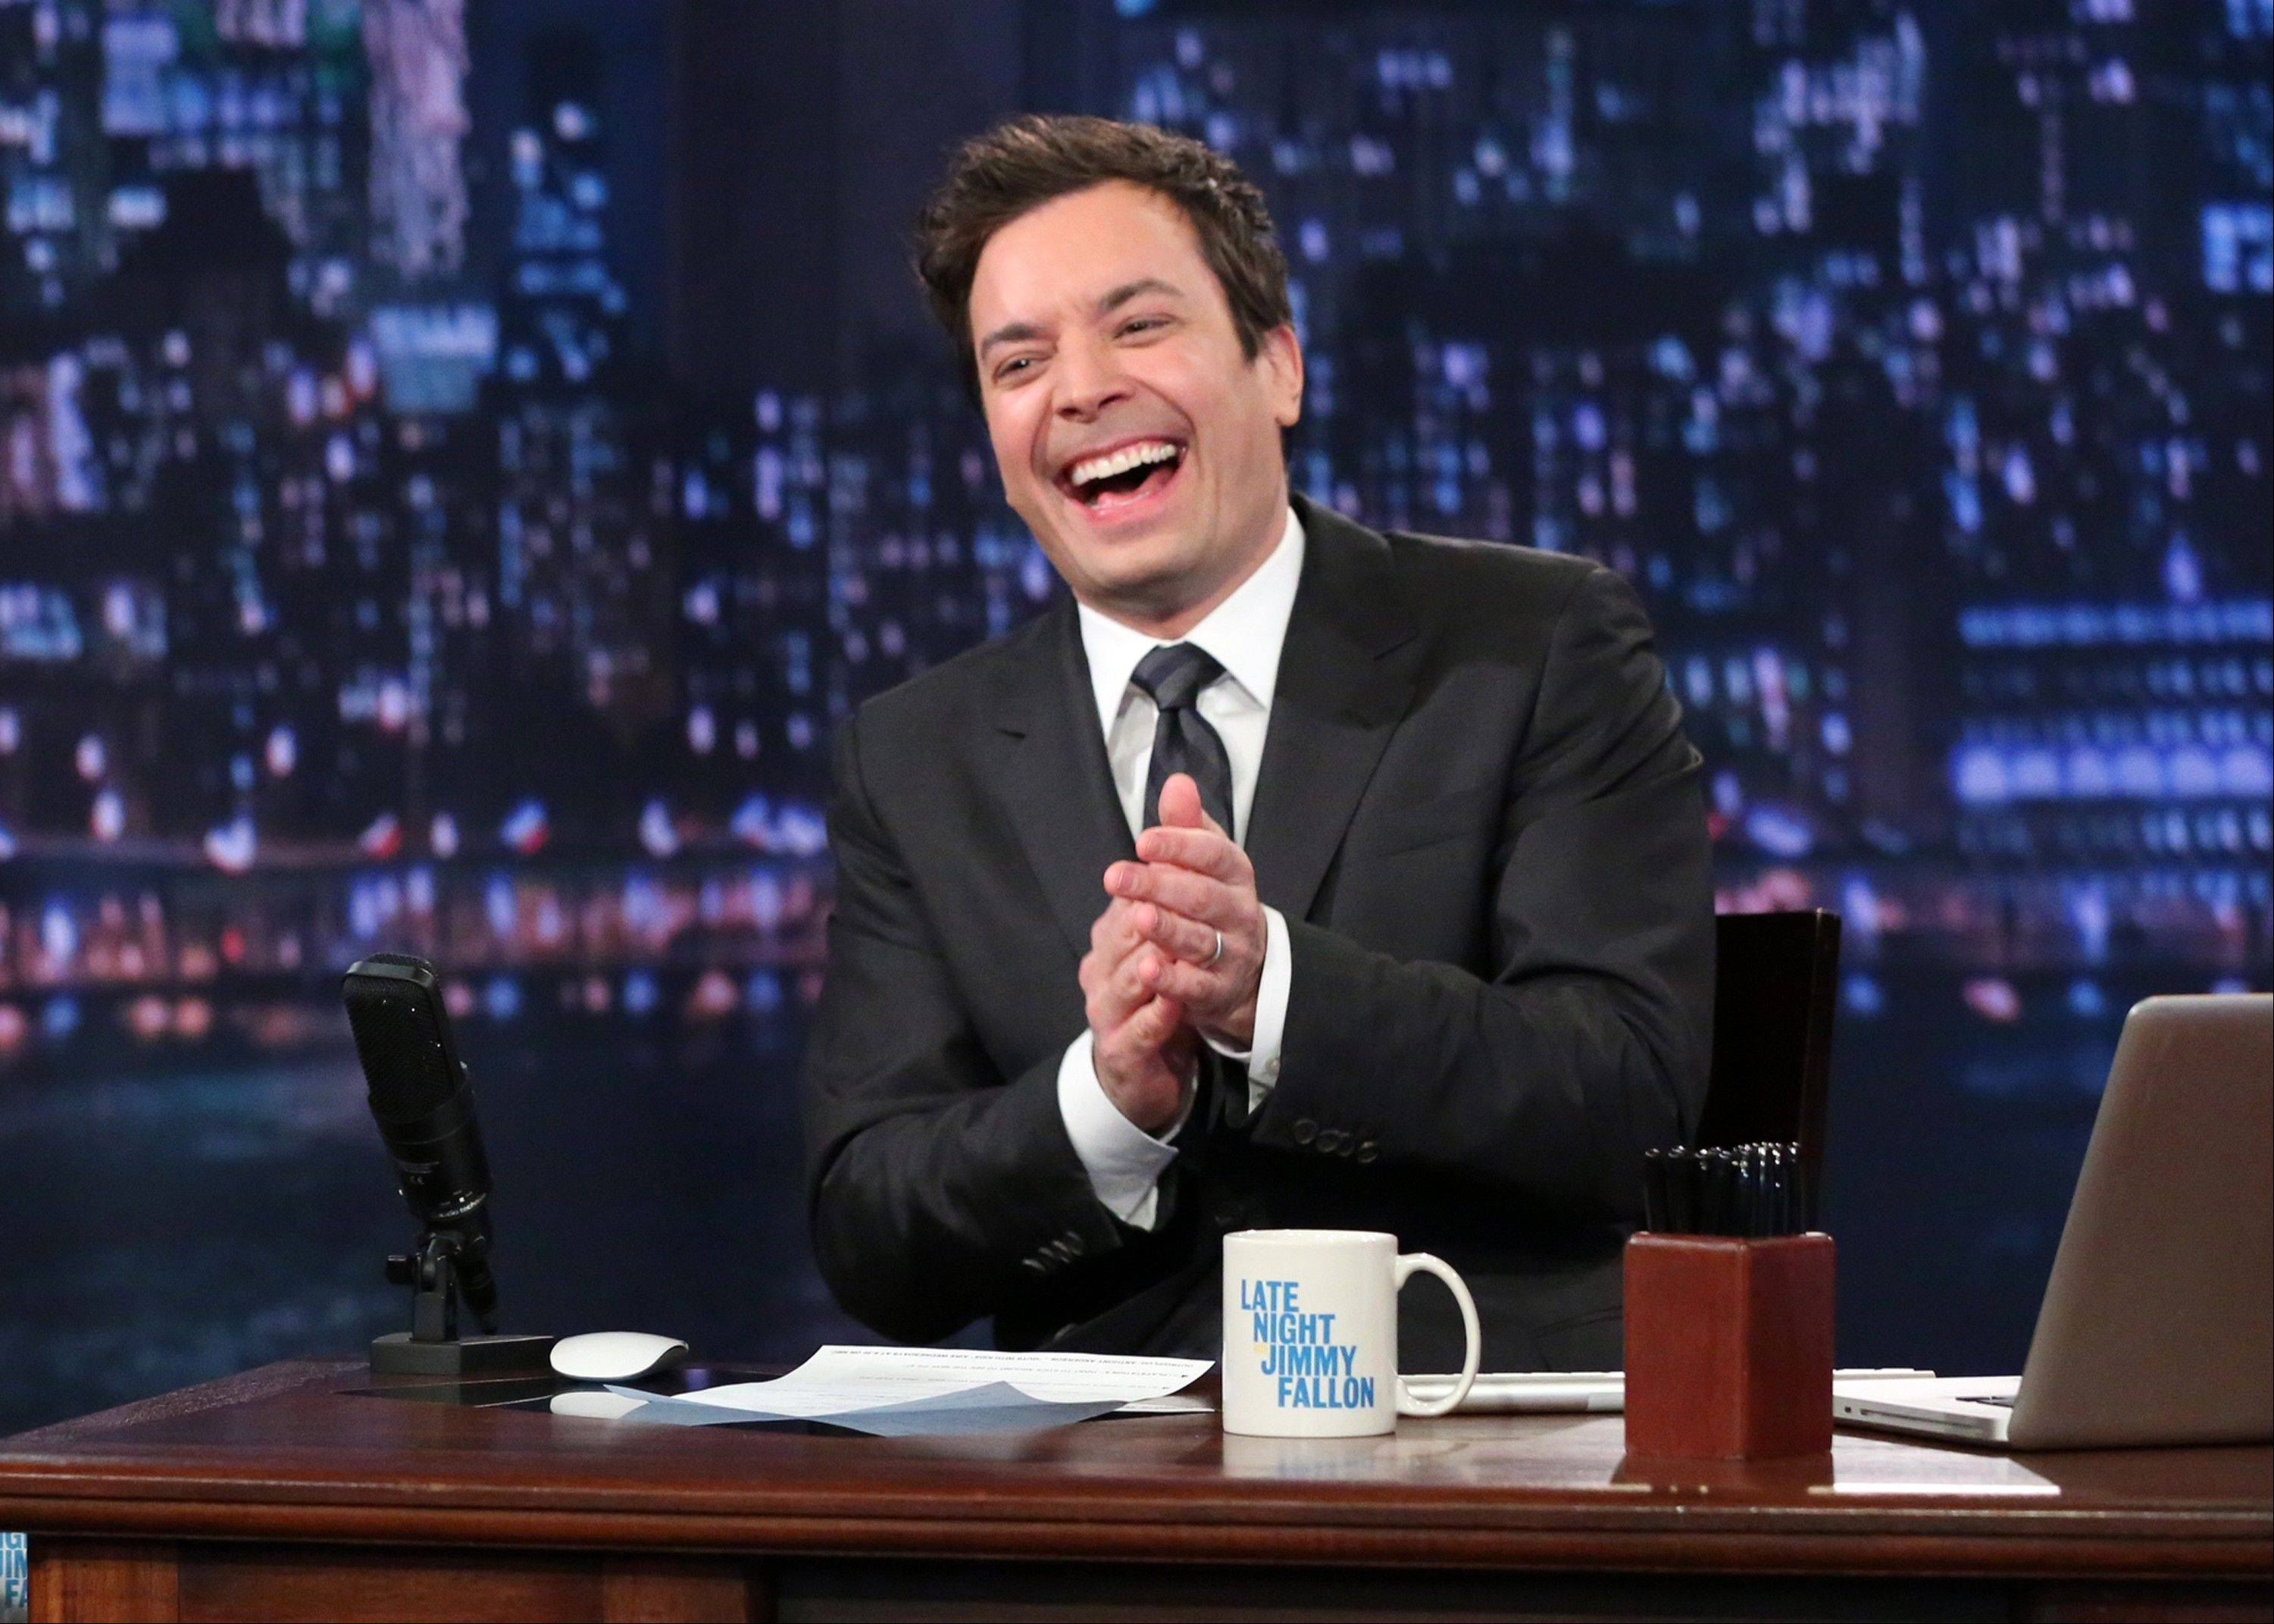 This Feb. 21, 2013 photo released by NBC shows Jimmy Fallon, host of �Late Night with Jimmy Fallon,� on the set in New York. Speculation is swirling the network is taking steps to replace the host with Jimmy Fallon next year and move the show from Burbank, Calif., to New York. NBC confirmed Wednesday, March 20, it�s creating a new studio for Fallon in New York, where he hosts �Late Night.� But the network did not comment on a report that the digs at its Rockefeller Plaza headquarters may become home to a transplanted, Fallon-hosted �Tonight Show.�